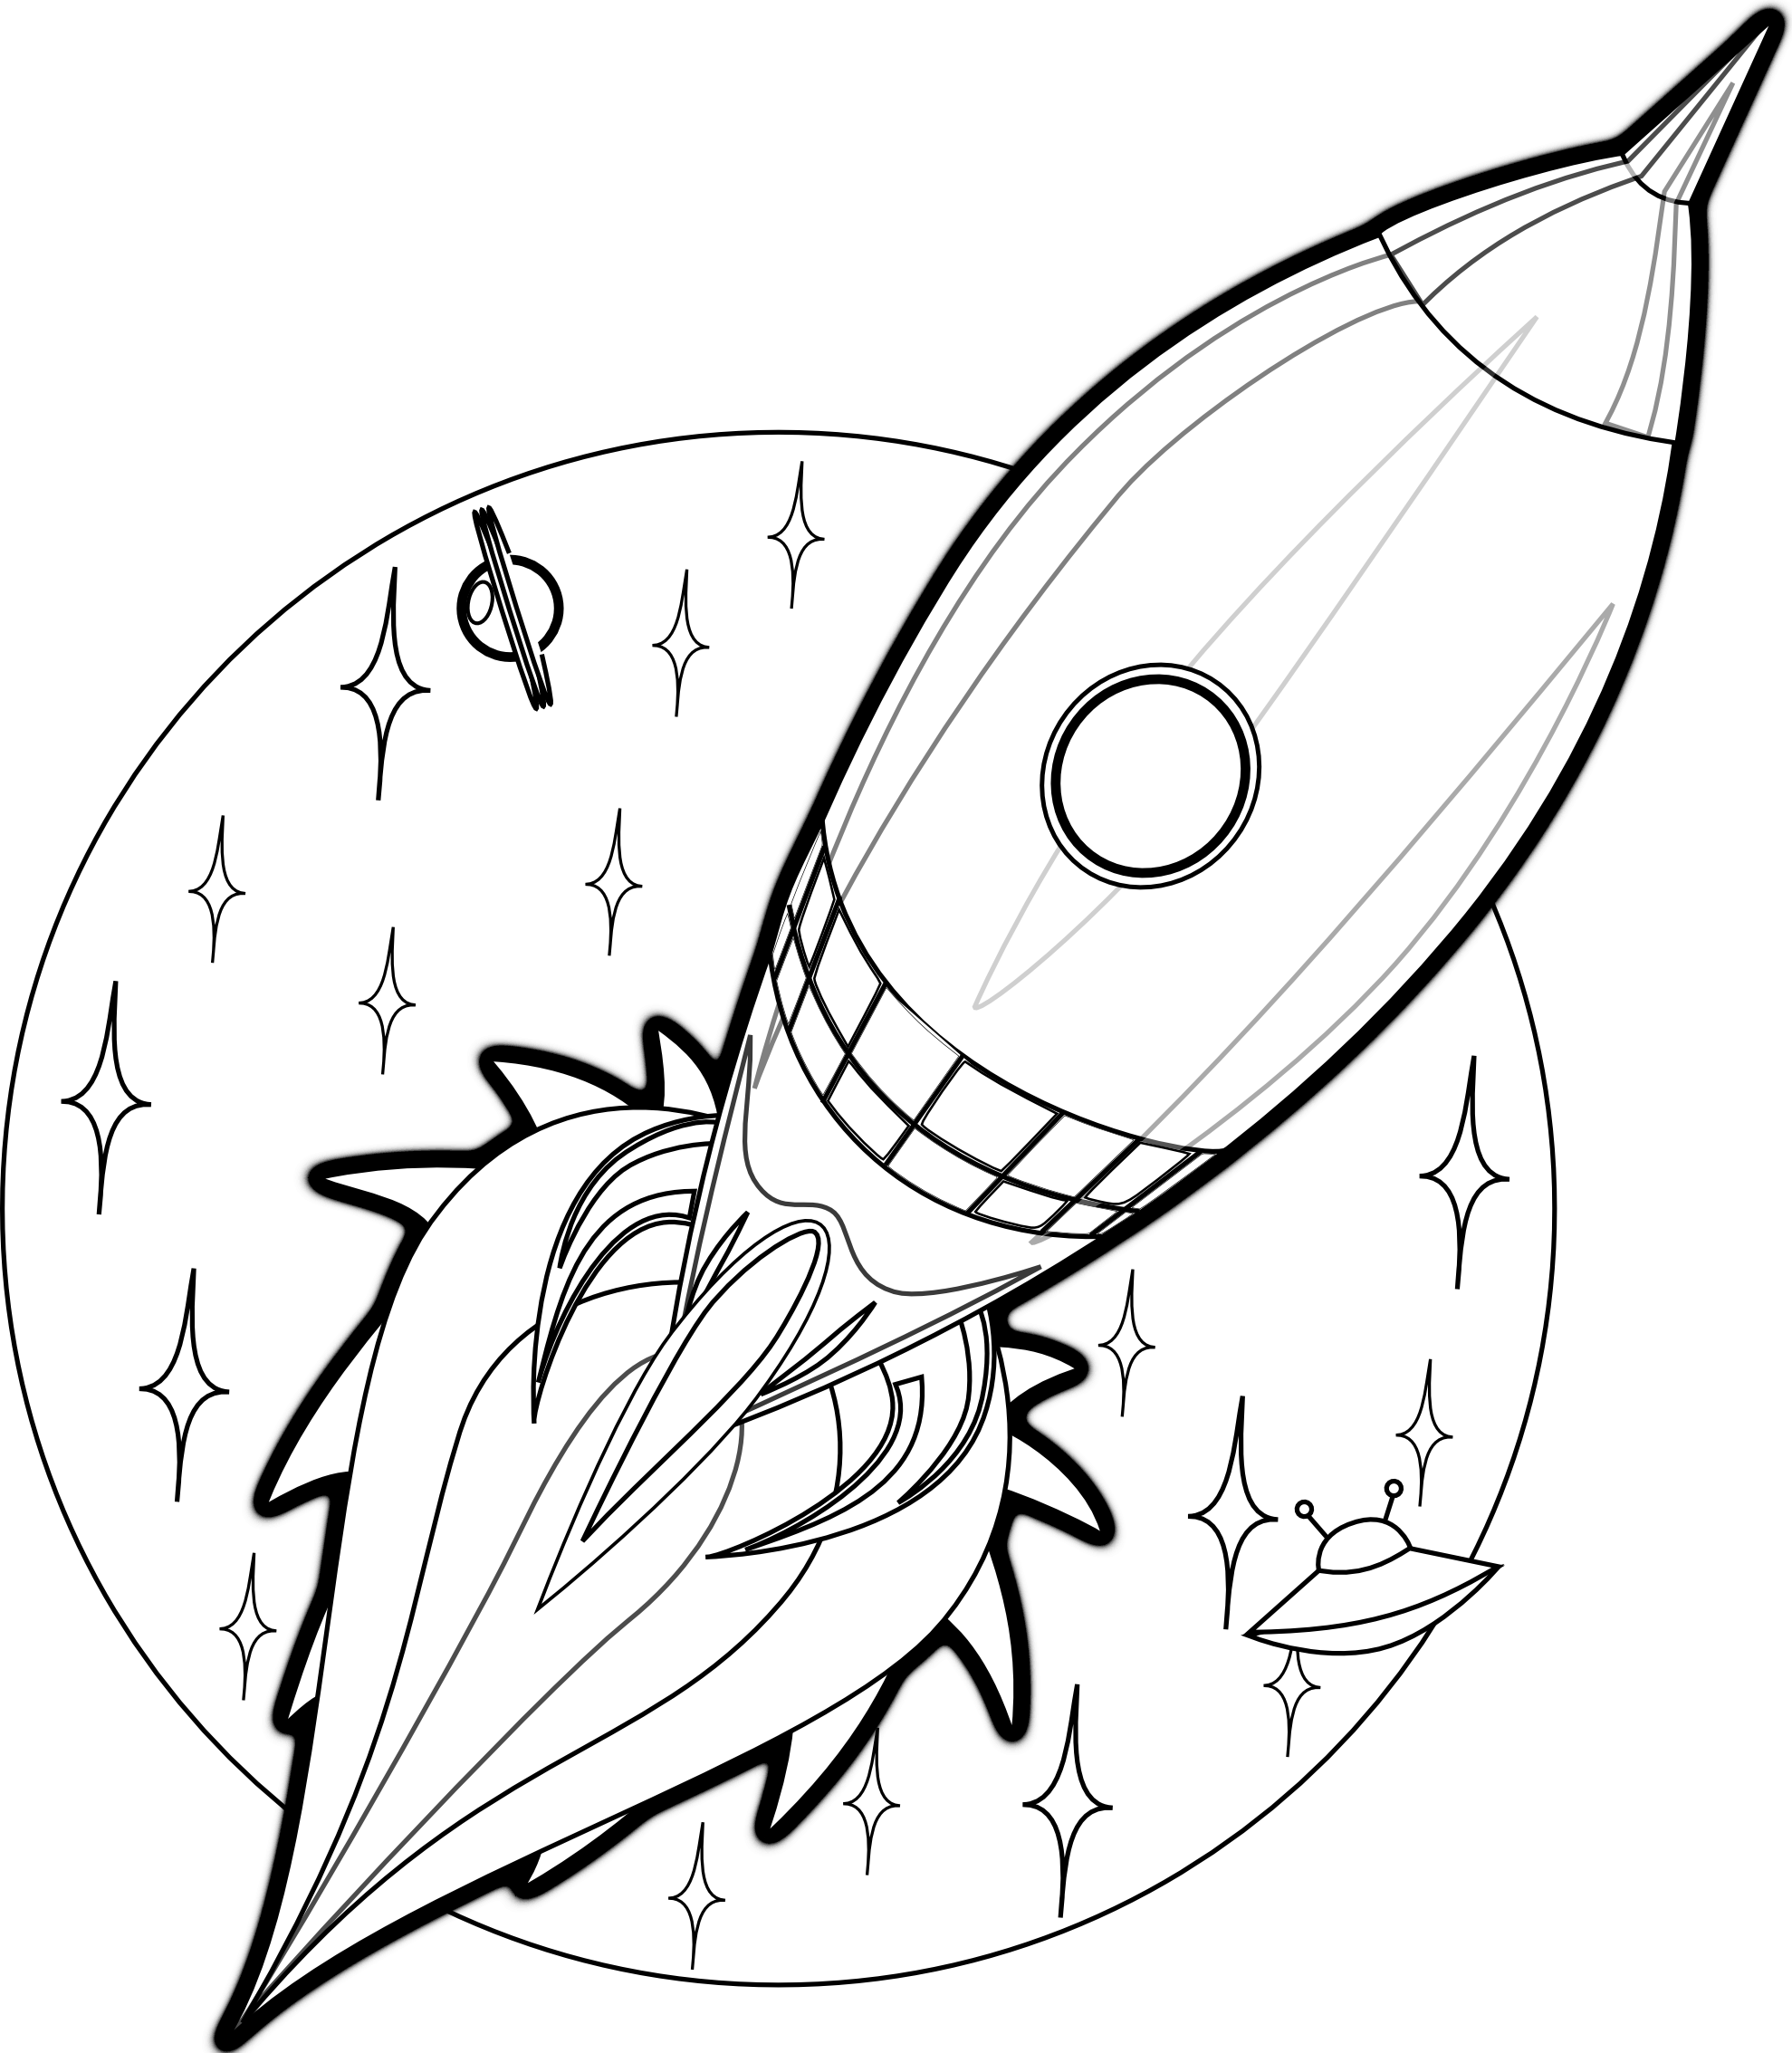 Free printable rocket ship coloring pages for kids for Coloring page book